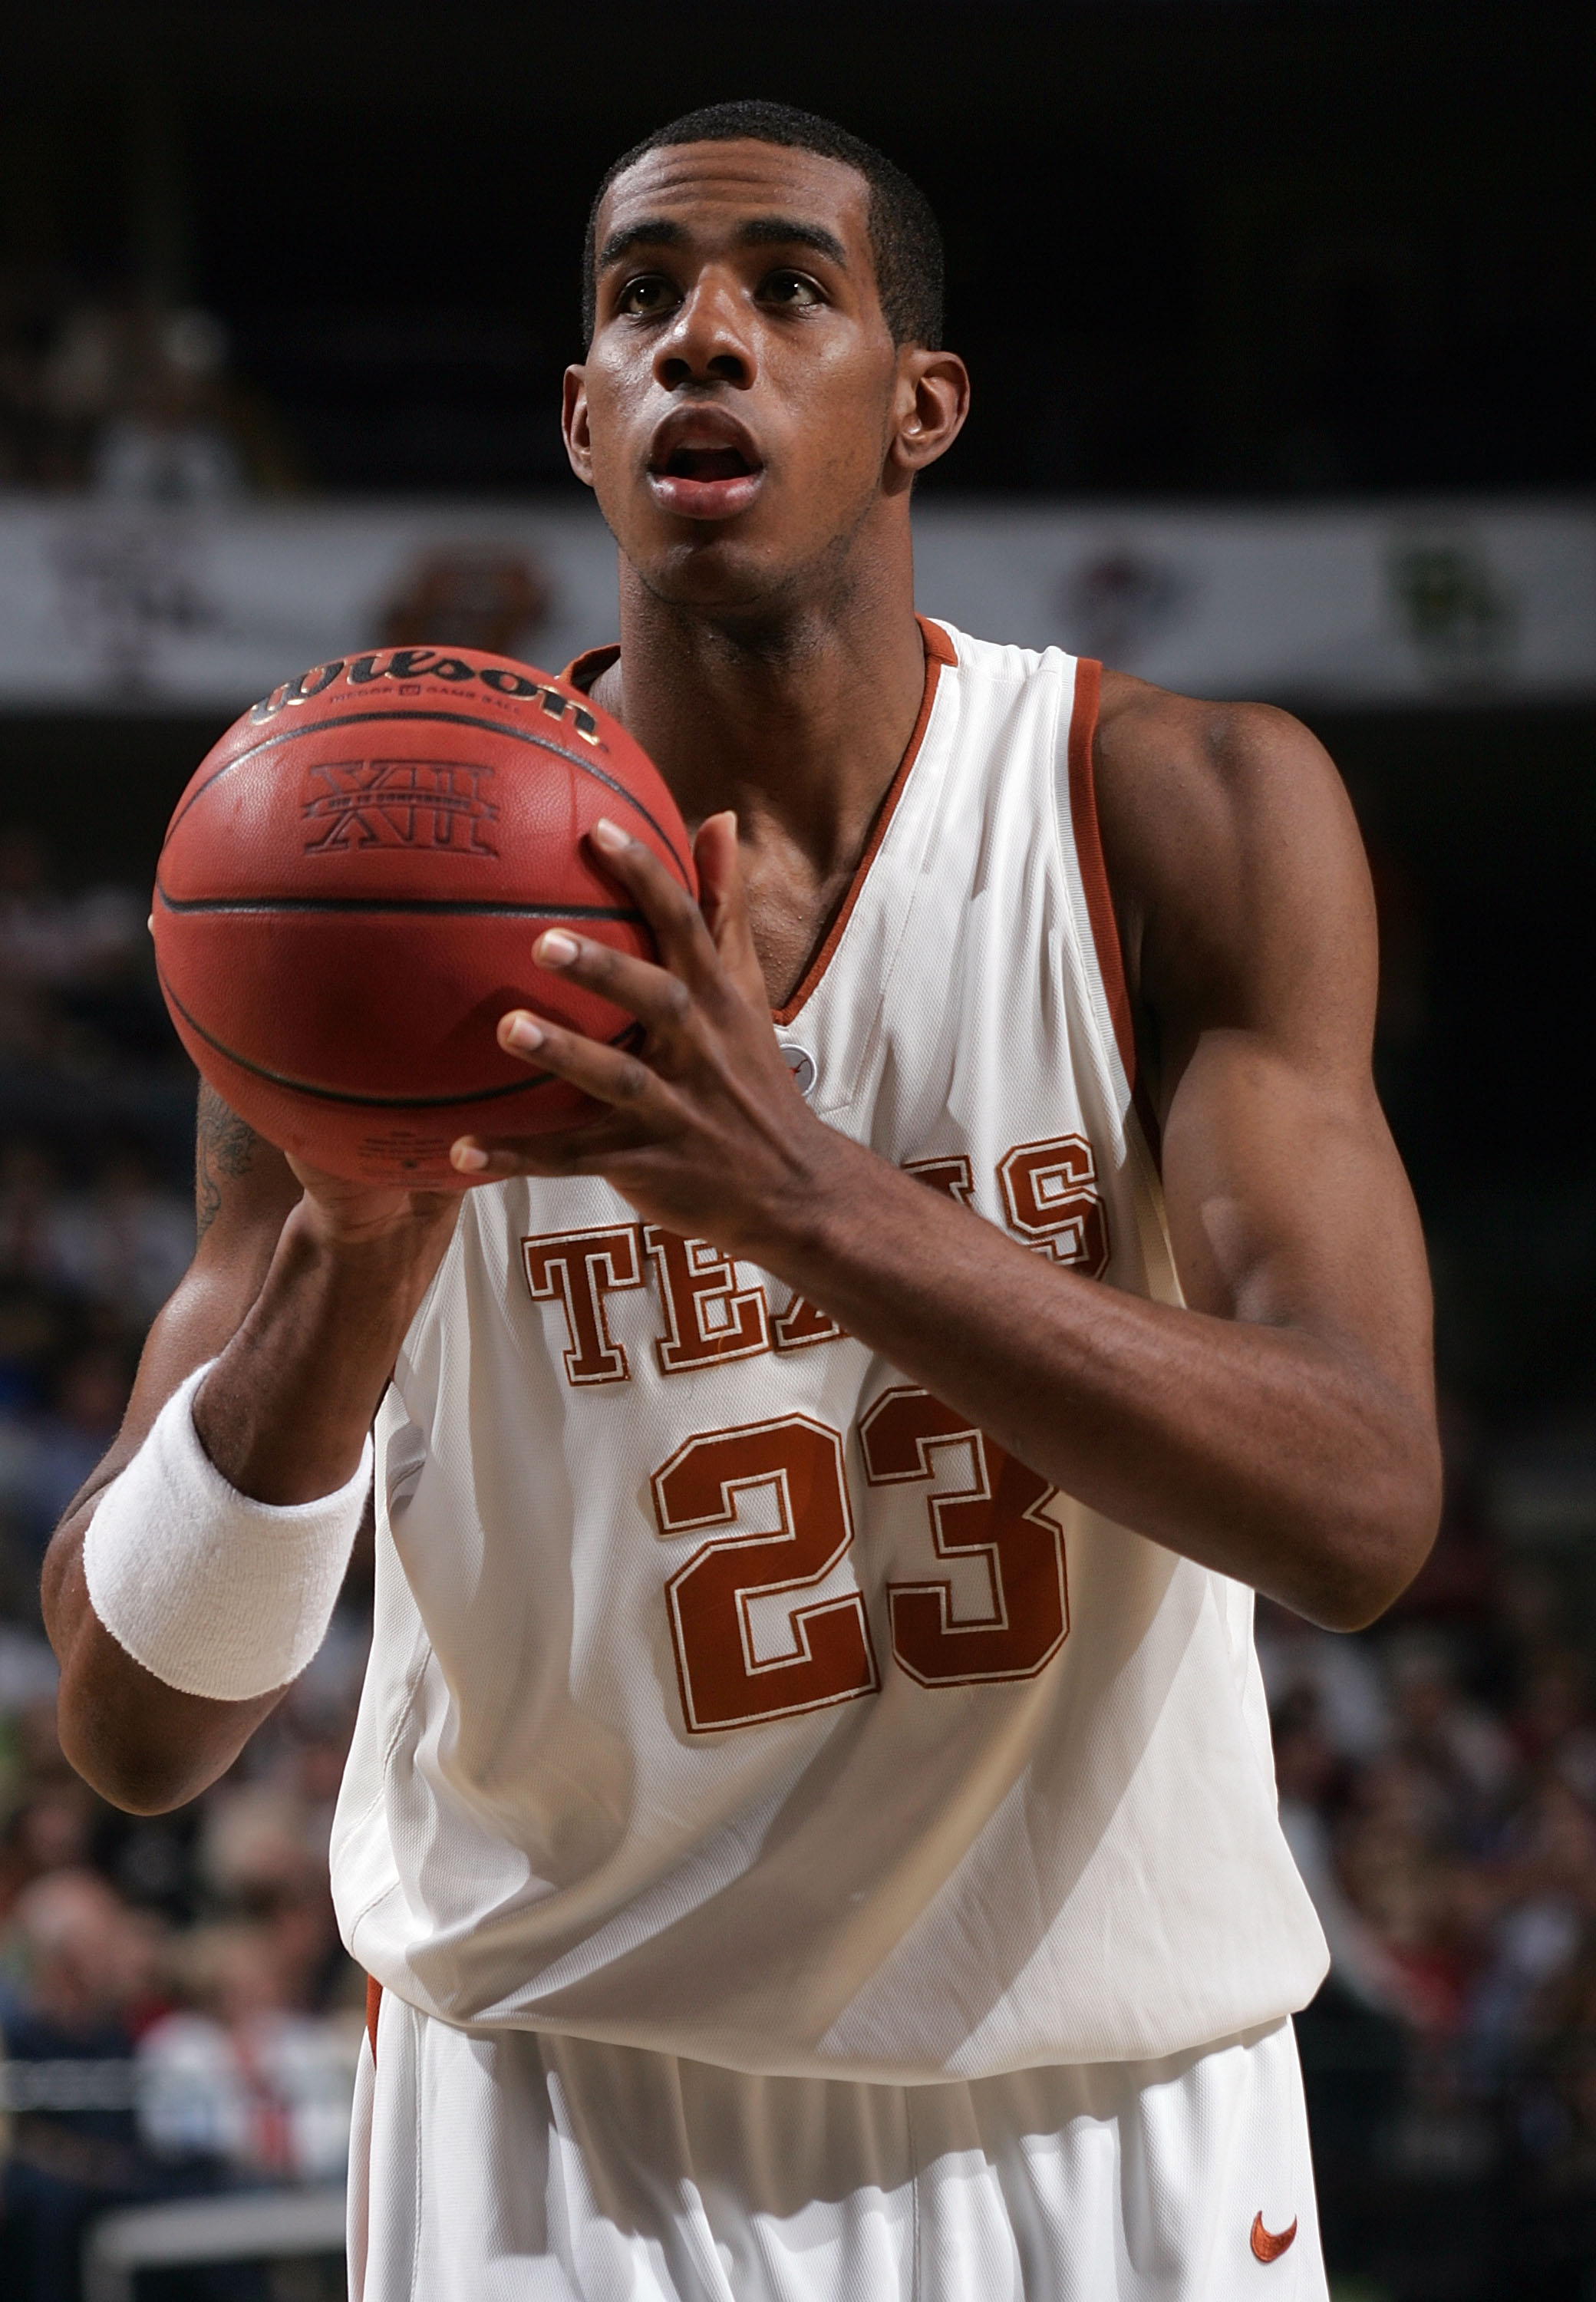 DALLAS - MARCH 11:  LaMarcus Aldridge #23 of the Texas Longhorns sets up for a free throw against the Texas A&M Aggies in the semifinals round of the Phillips 66 Big 12 Men's Basketball Championship Tournament at American Airlines Arena on March 11, 2006